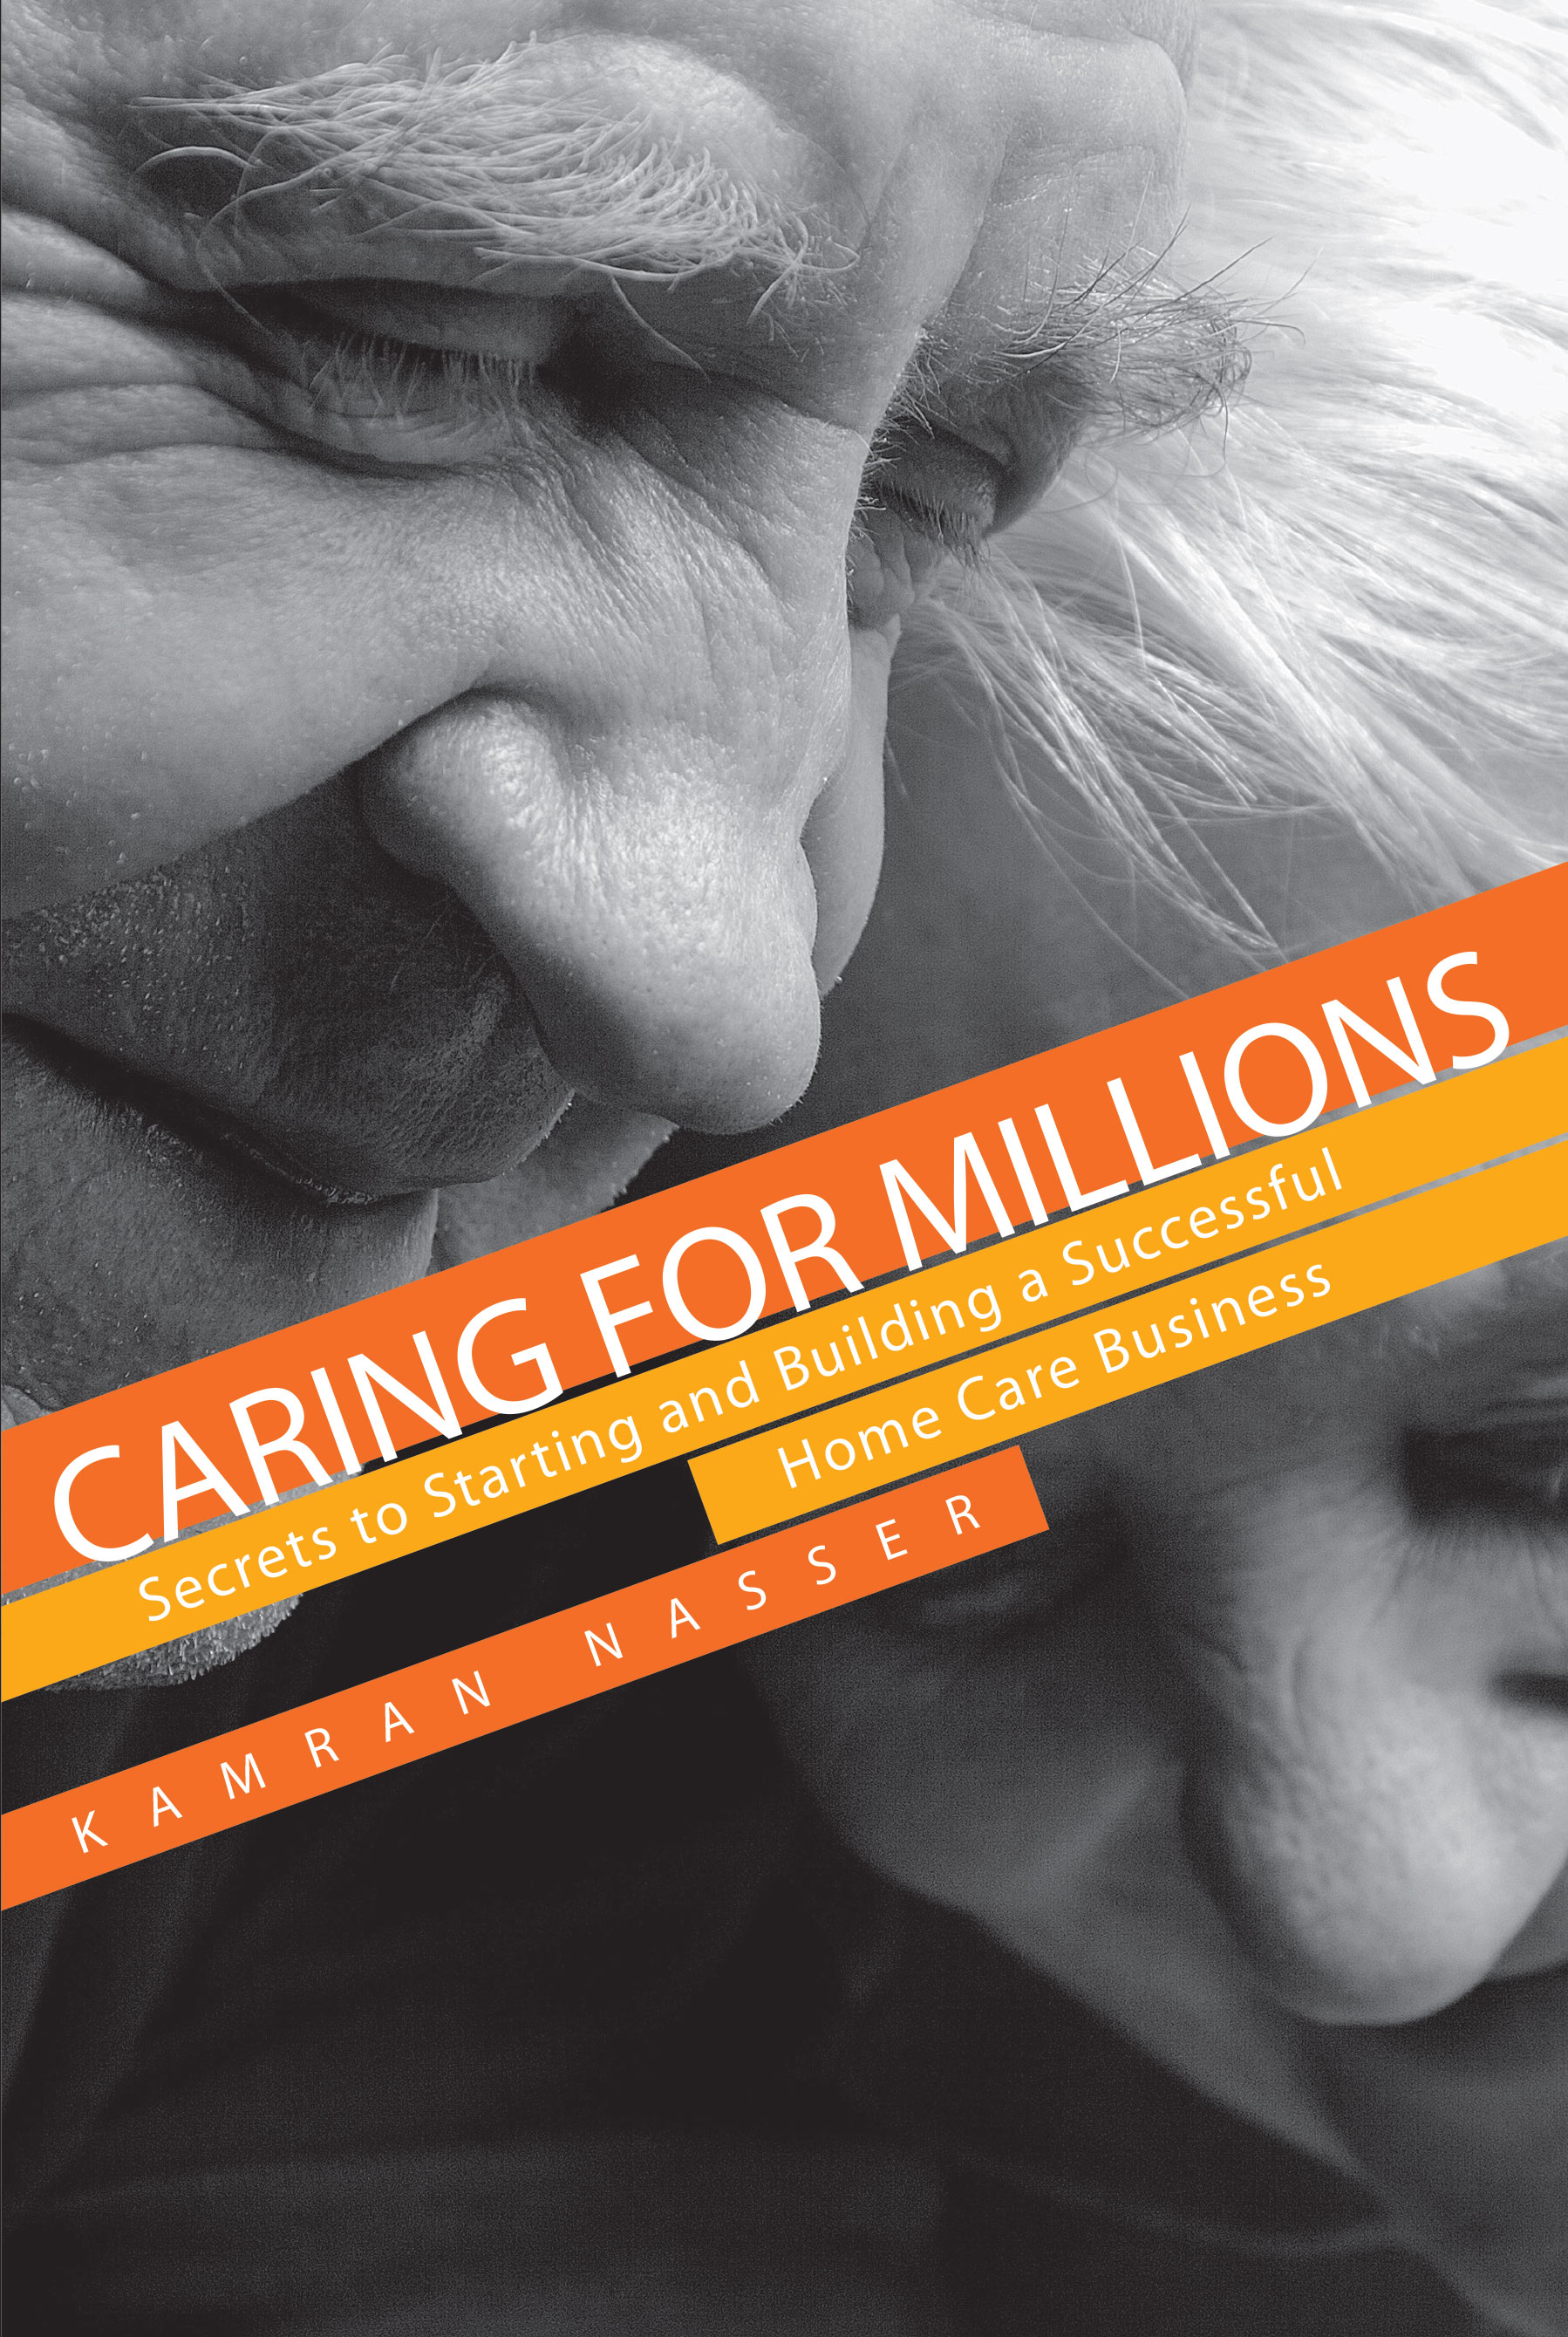 Caring for Millions: Secrets to Starting and Building a Successful Home Care Business